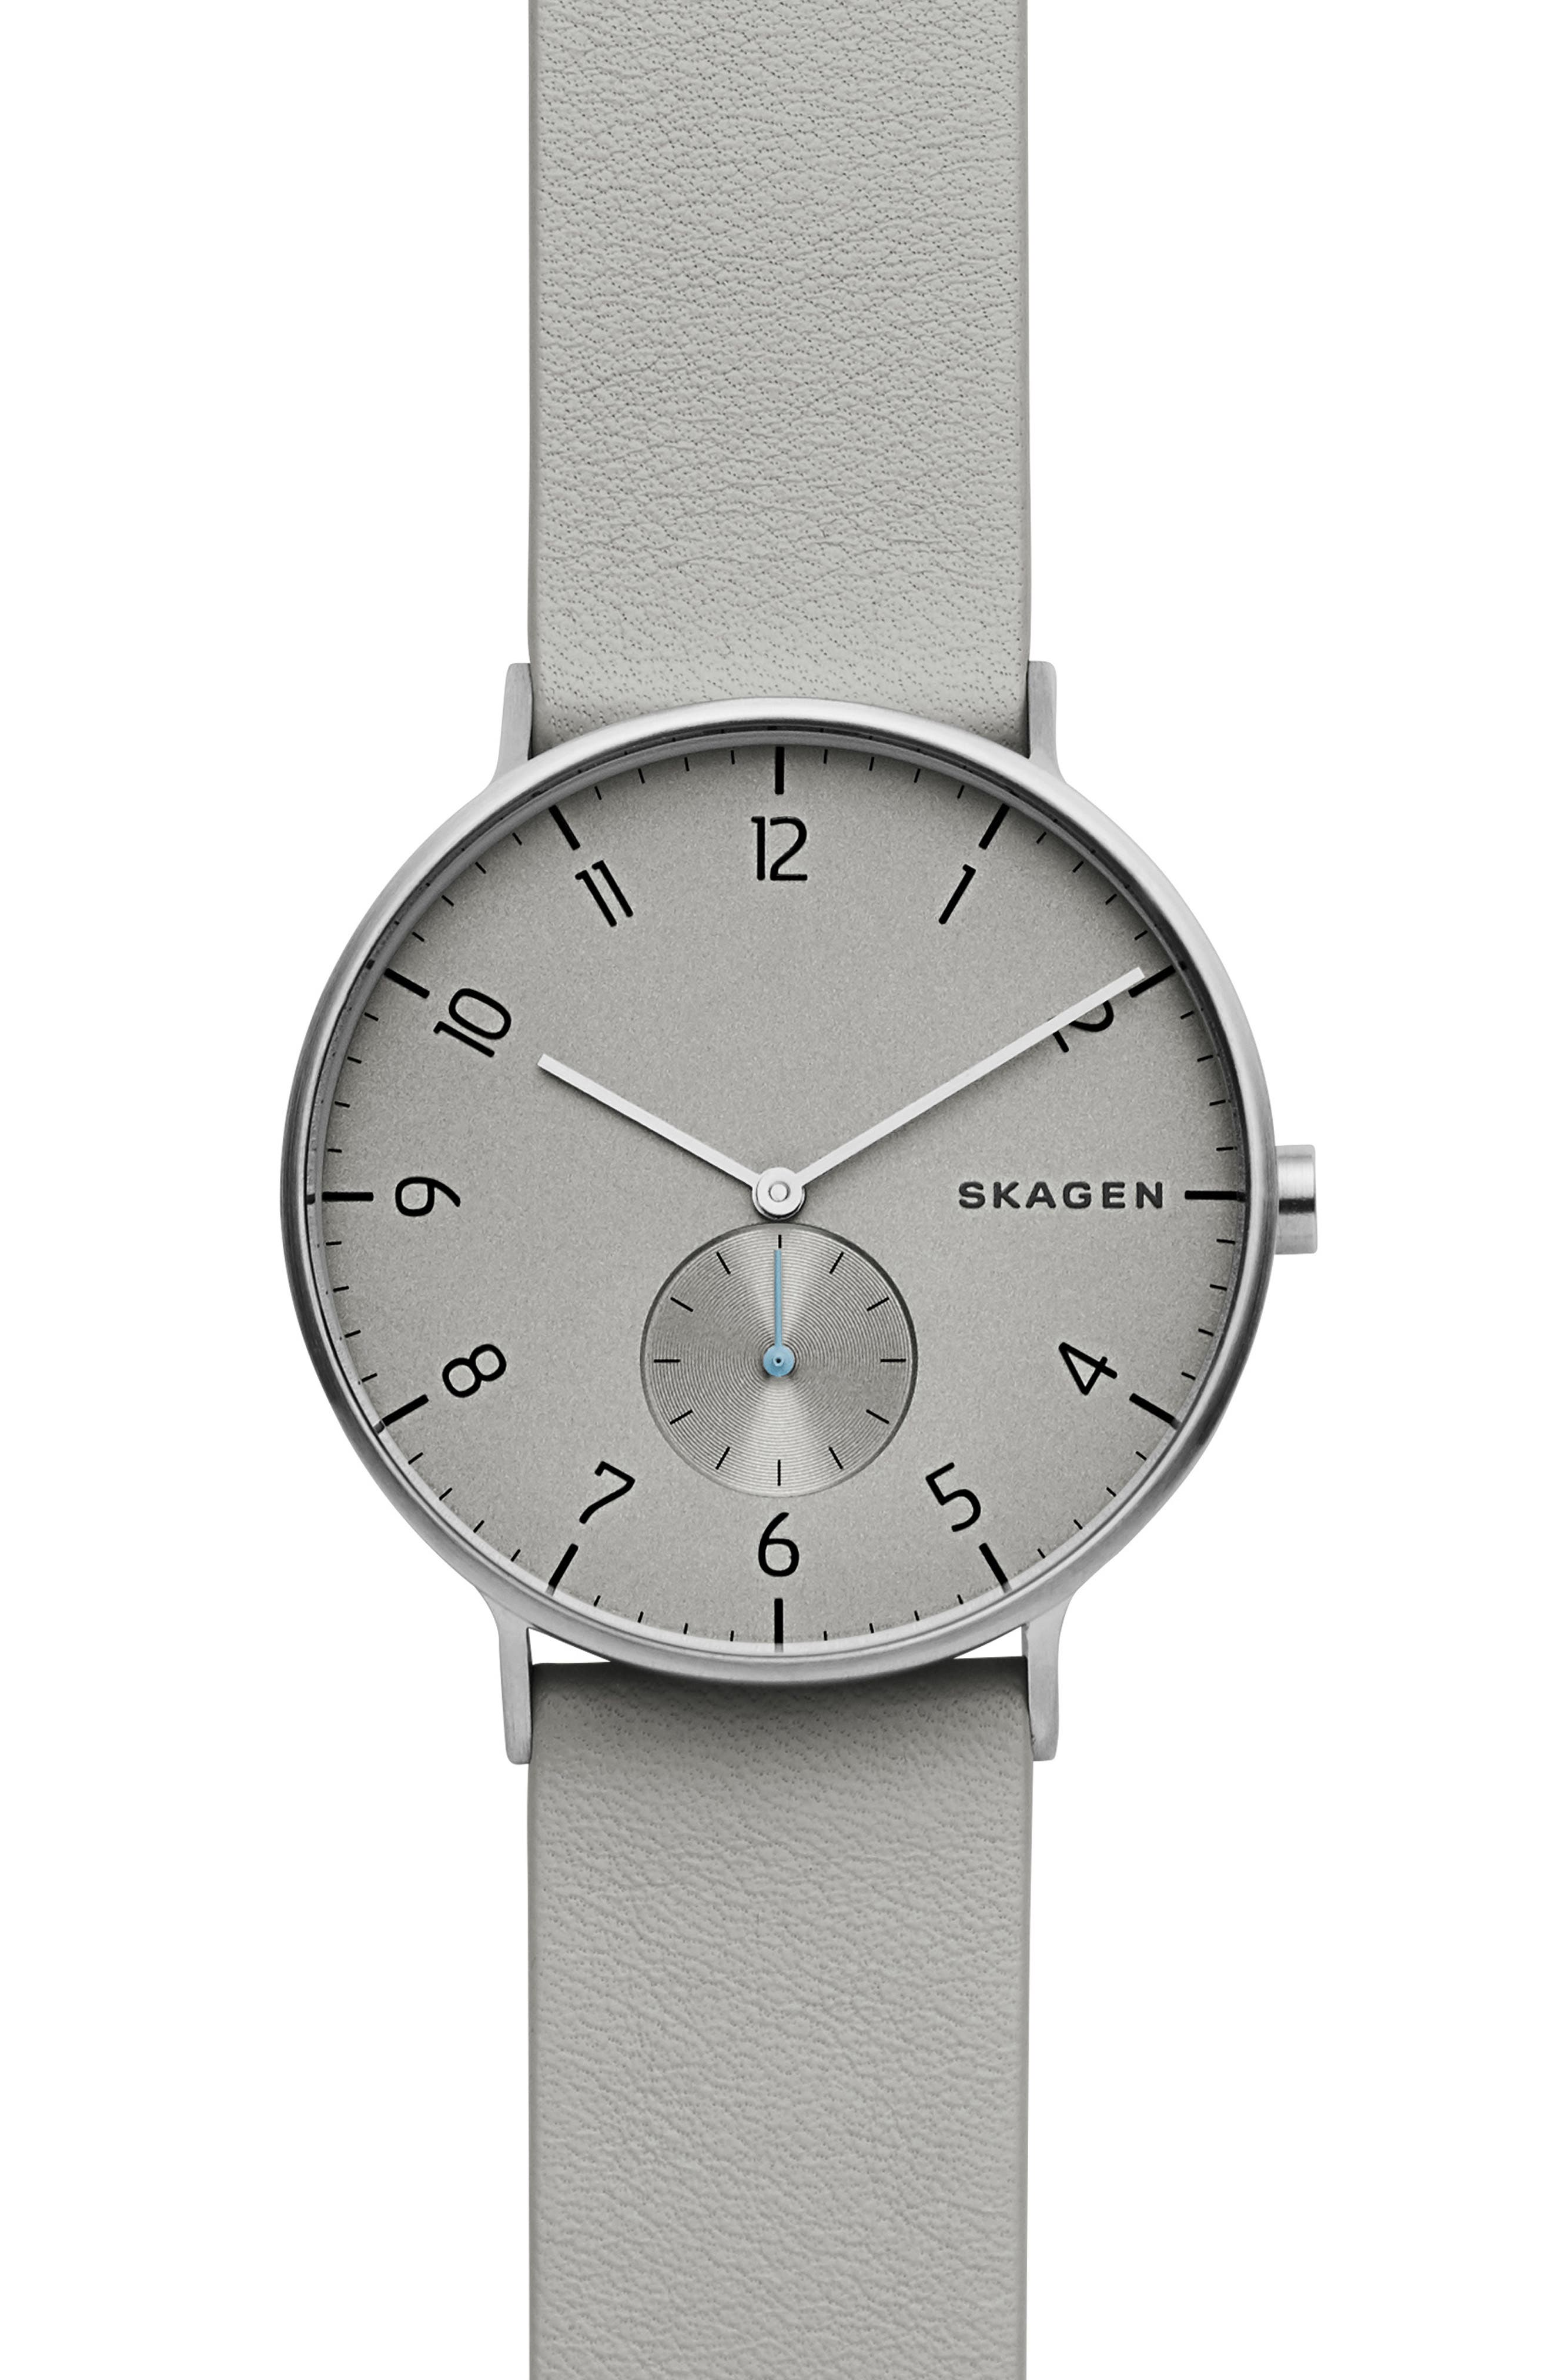 SKAGEN MEN'S AAREN GRAY LEATHER STRAP WATCH 40MM